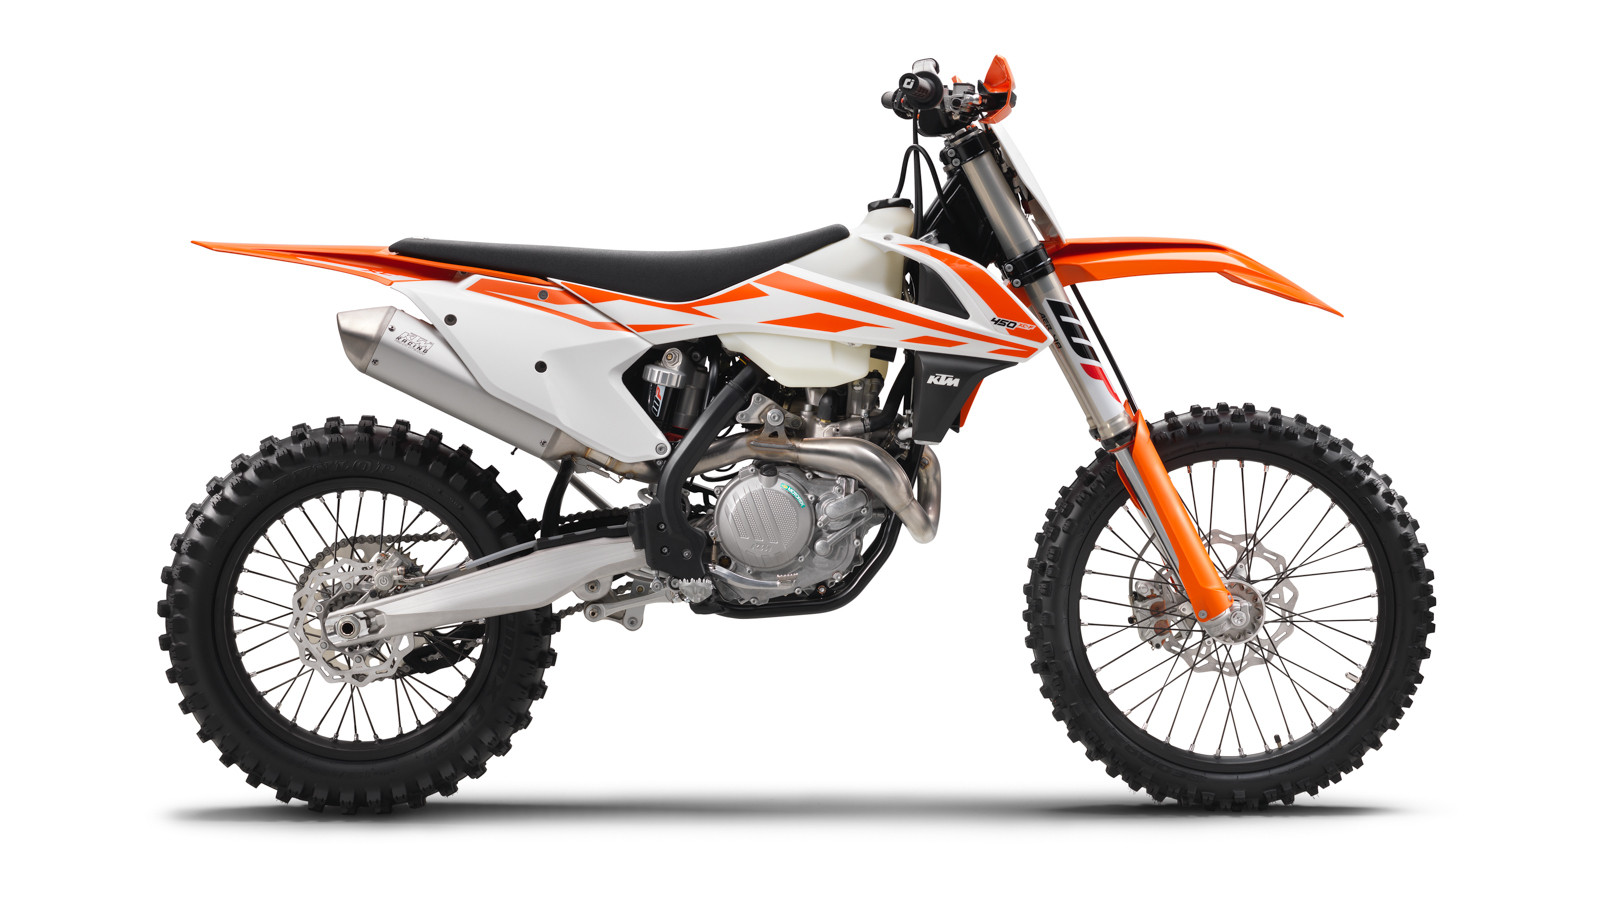 2017 KTM 450 XC-F - First Look: 2017 KTM Motocross and Cross-Country Line - Motocross Pictures - Vital MX